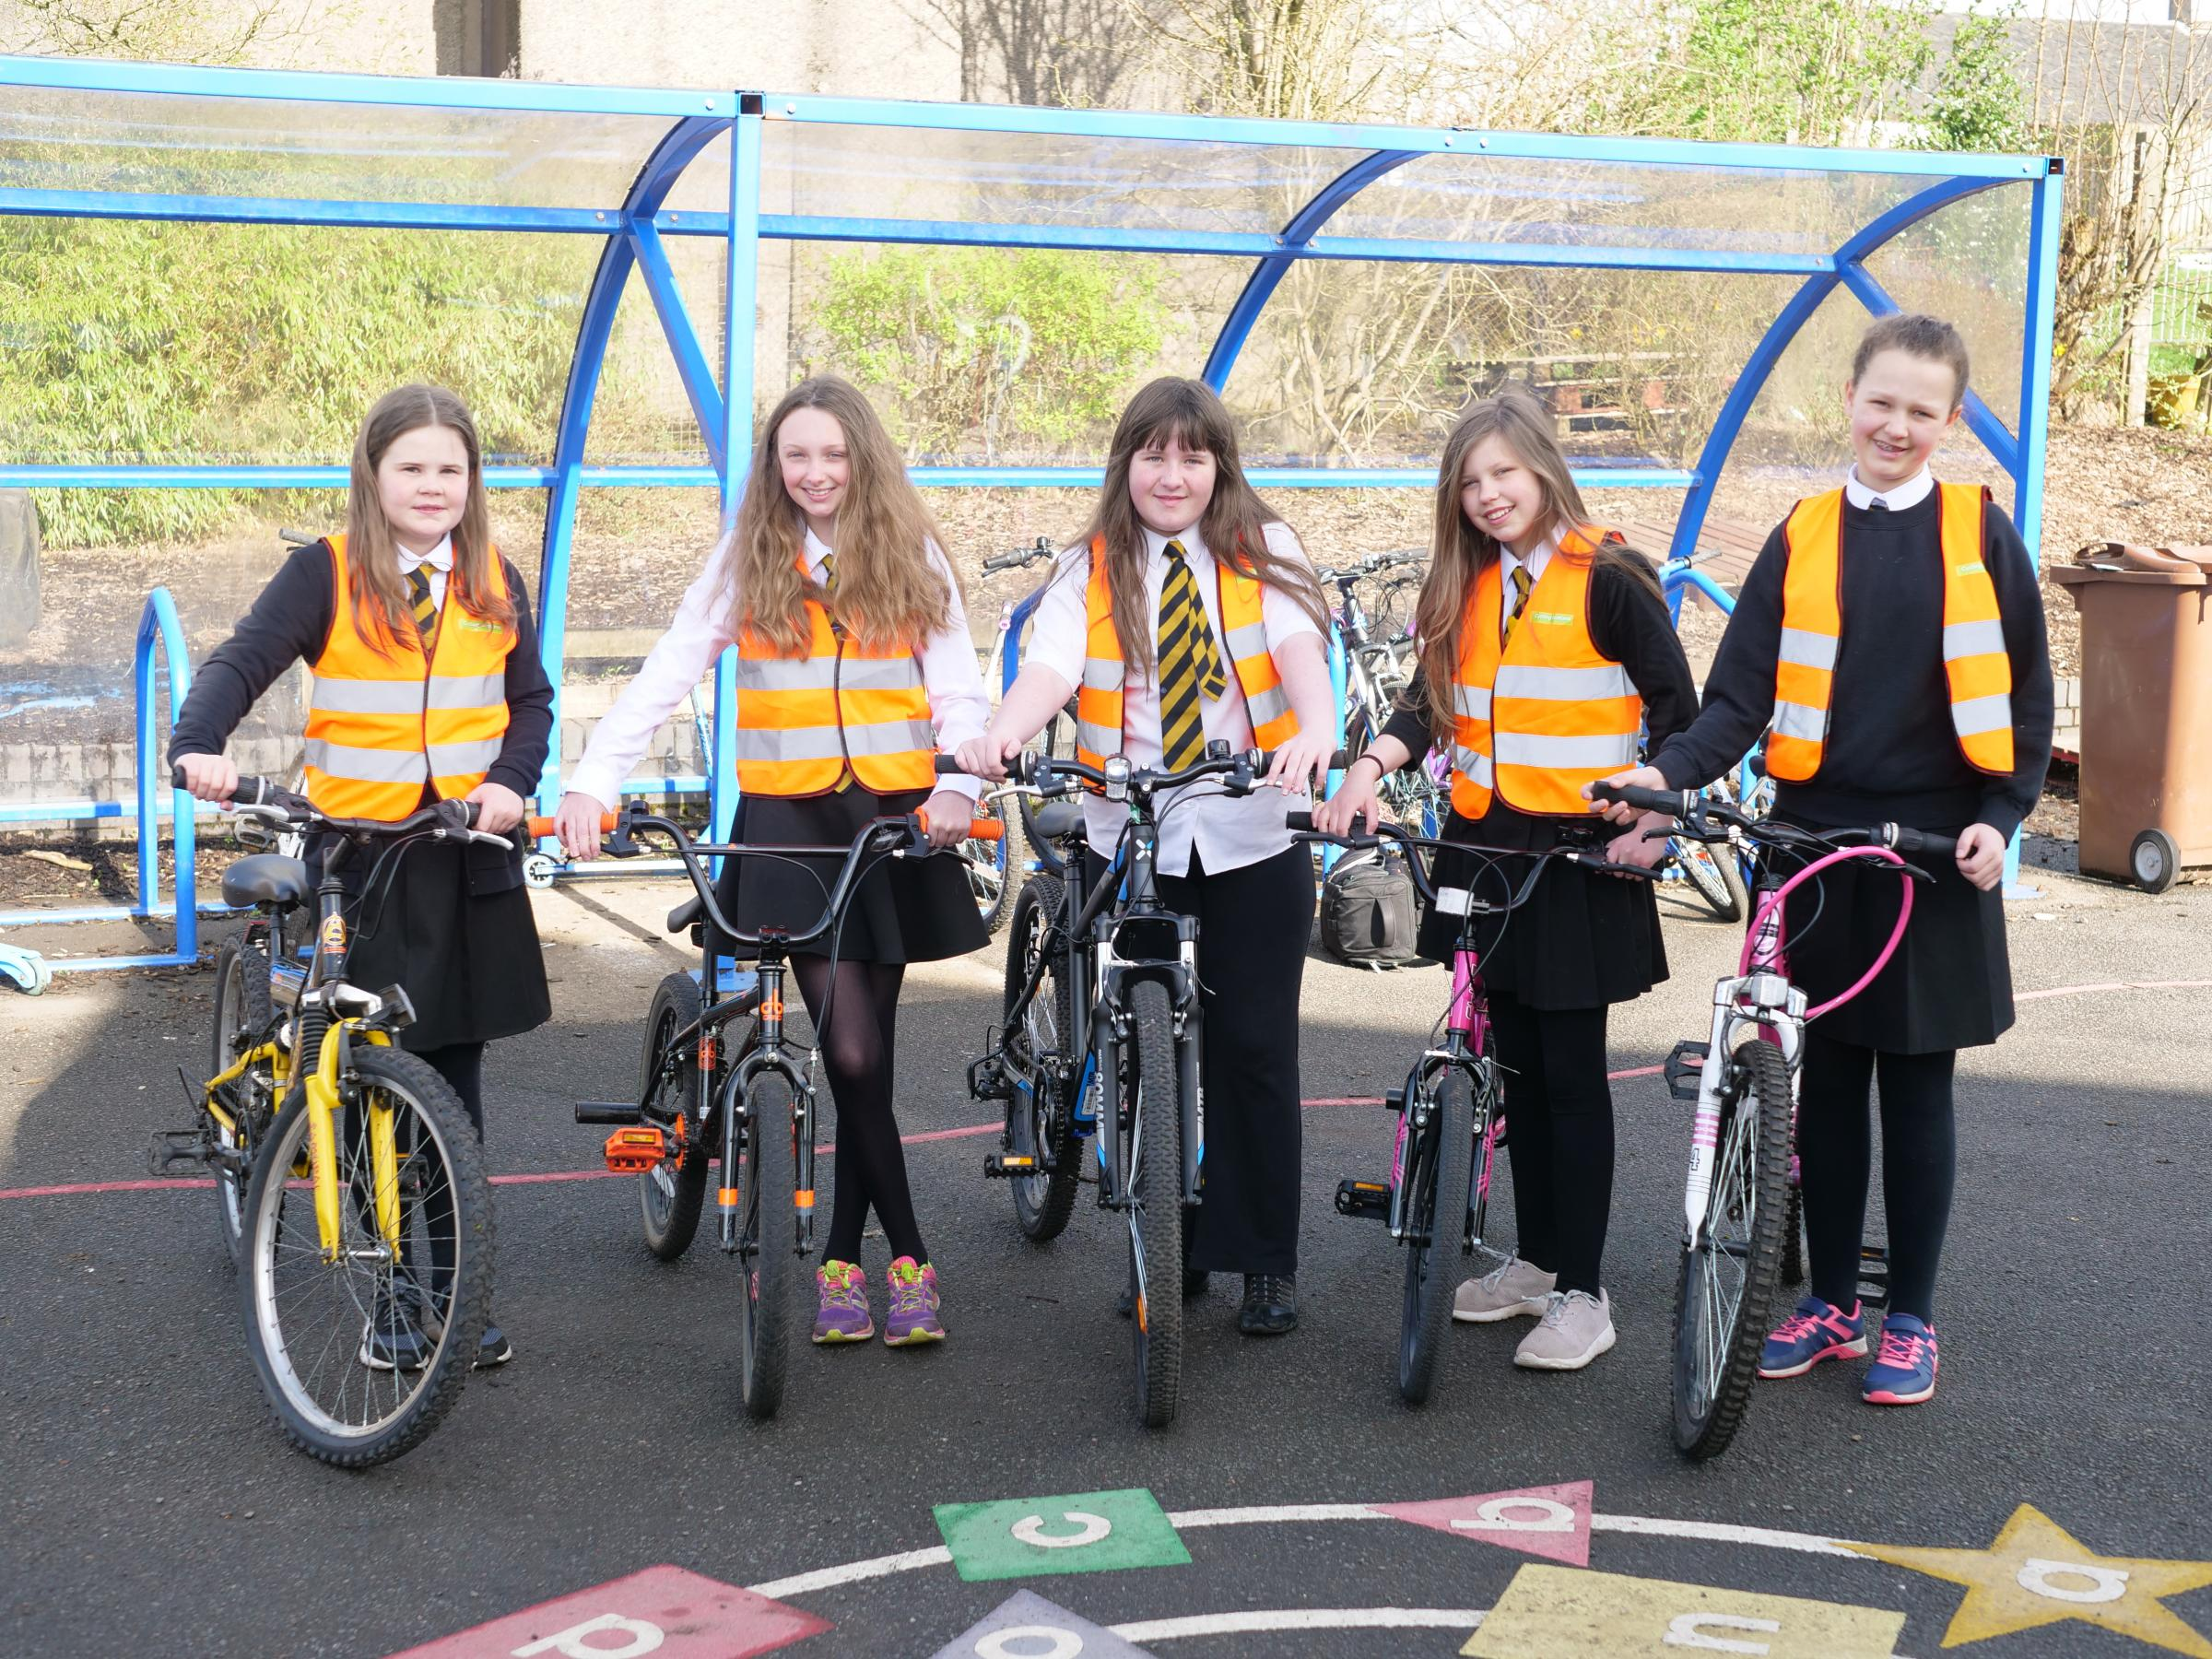 Neilston pupils promote safer cycling in village